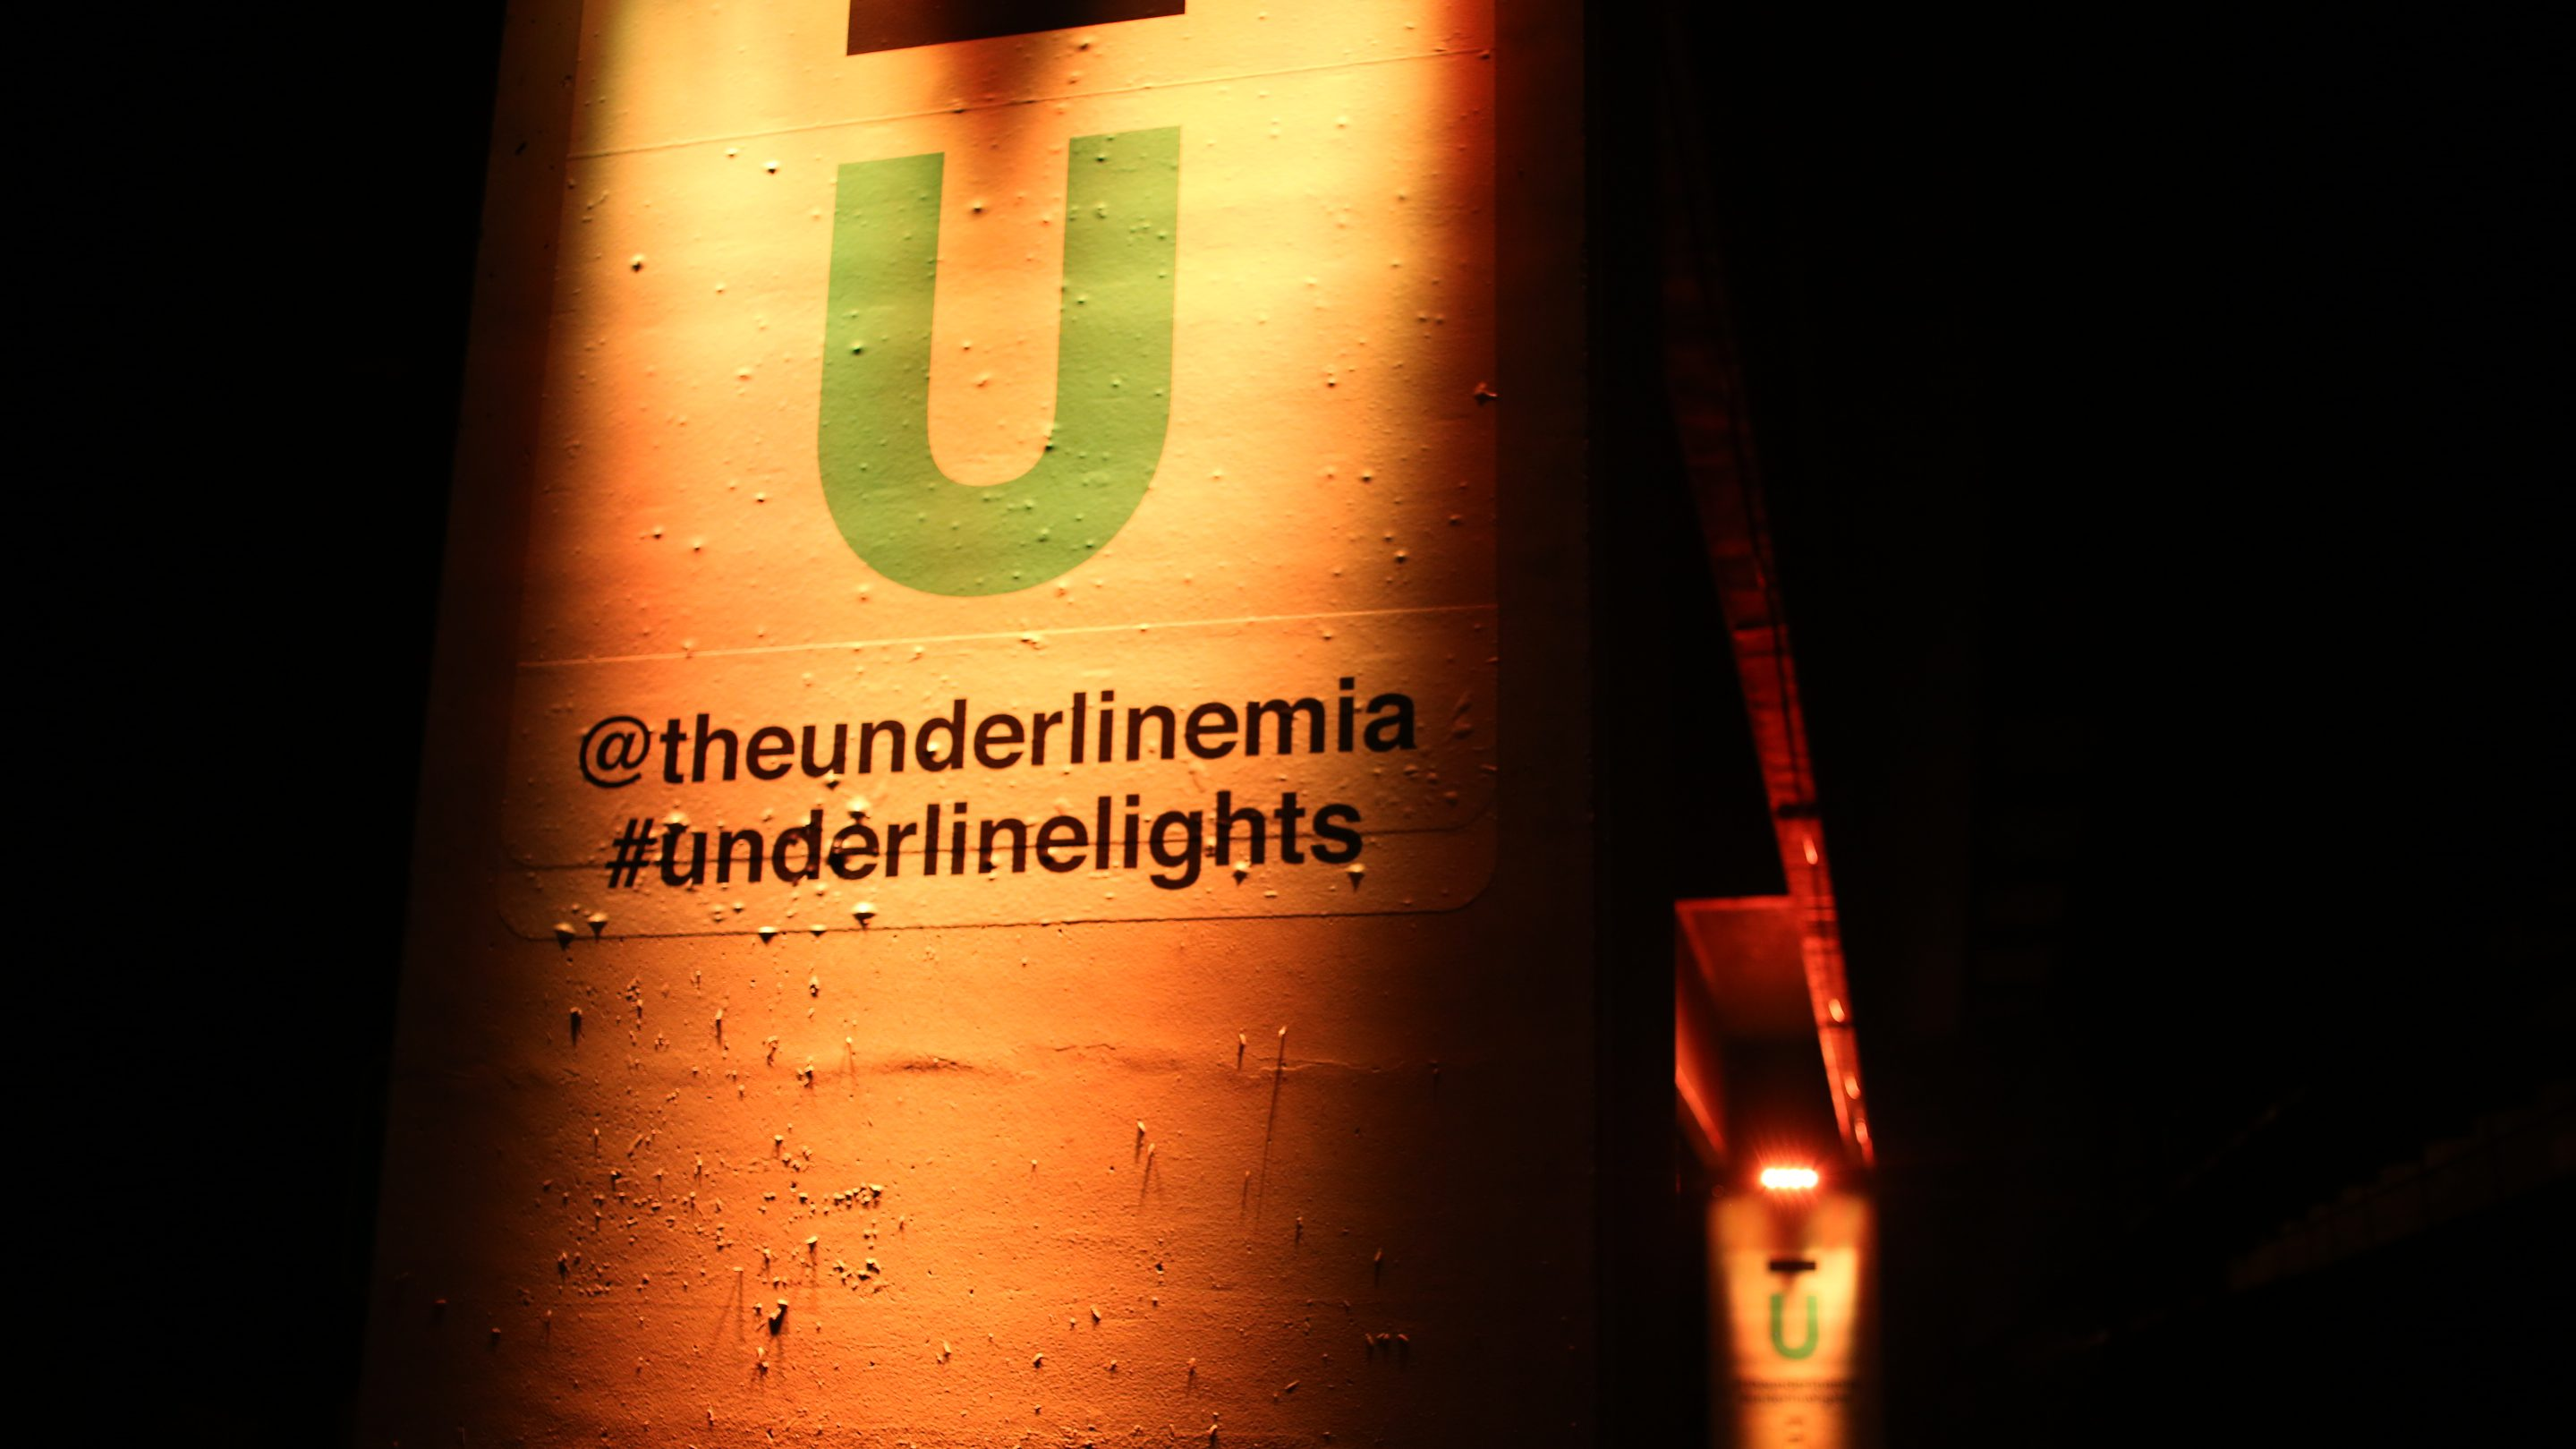 The Underline Lights